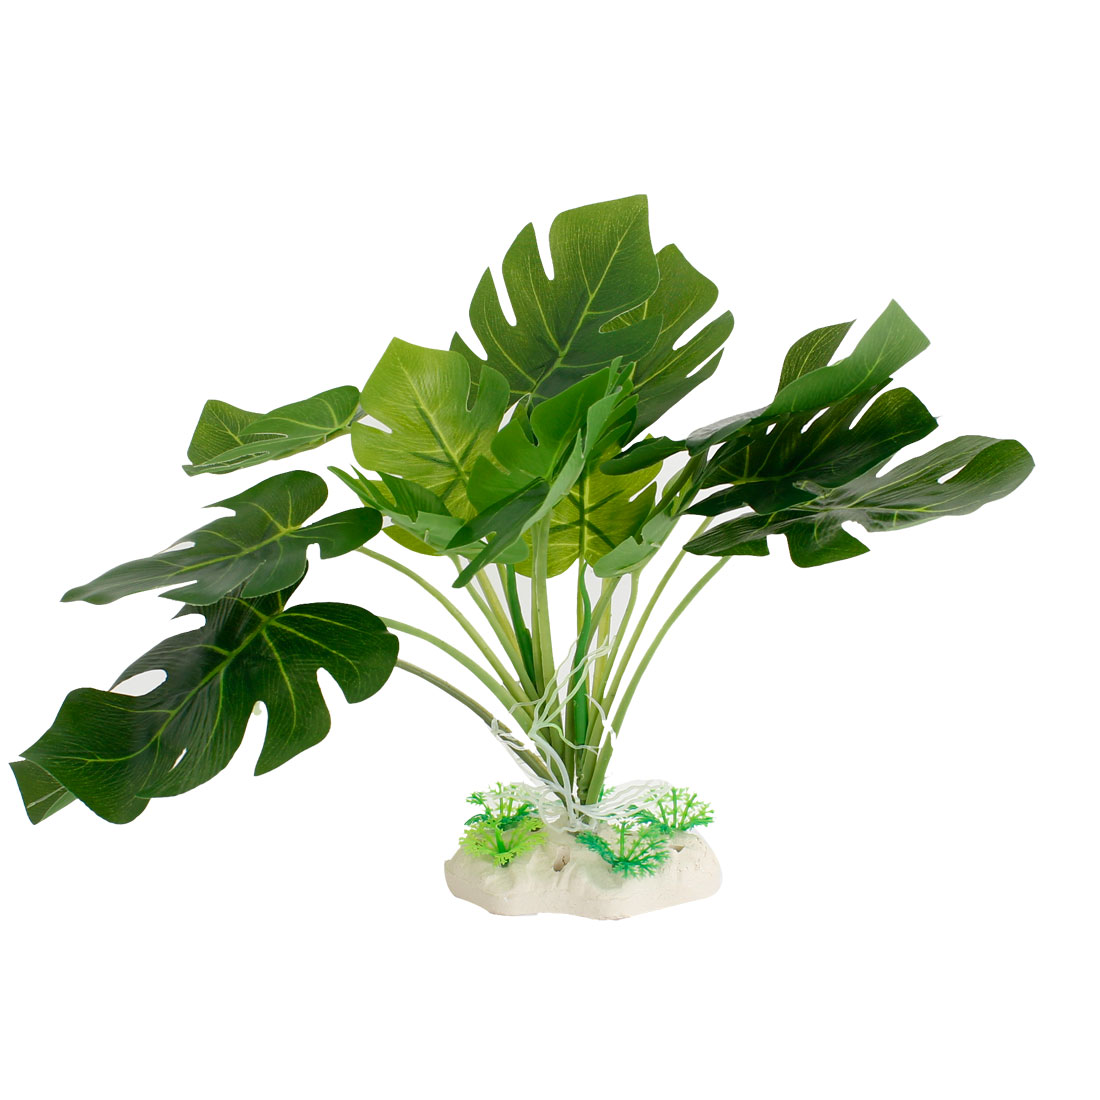 "Art Green Plastic Leaves Aquariums Water Plant Decorated 9.5"" High for Fish Tank"